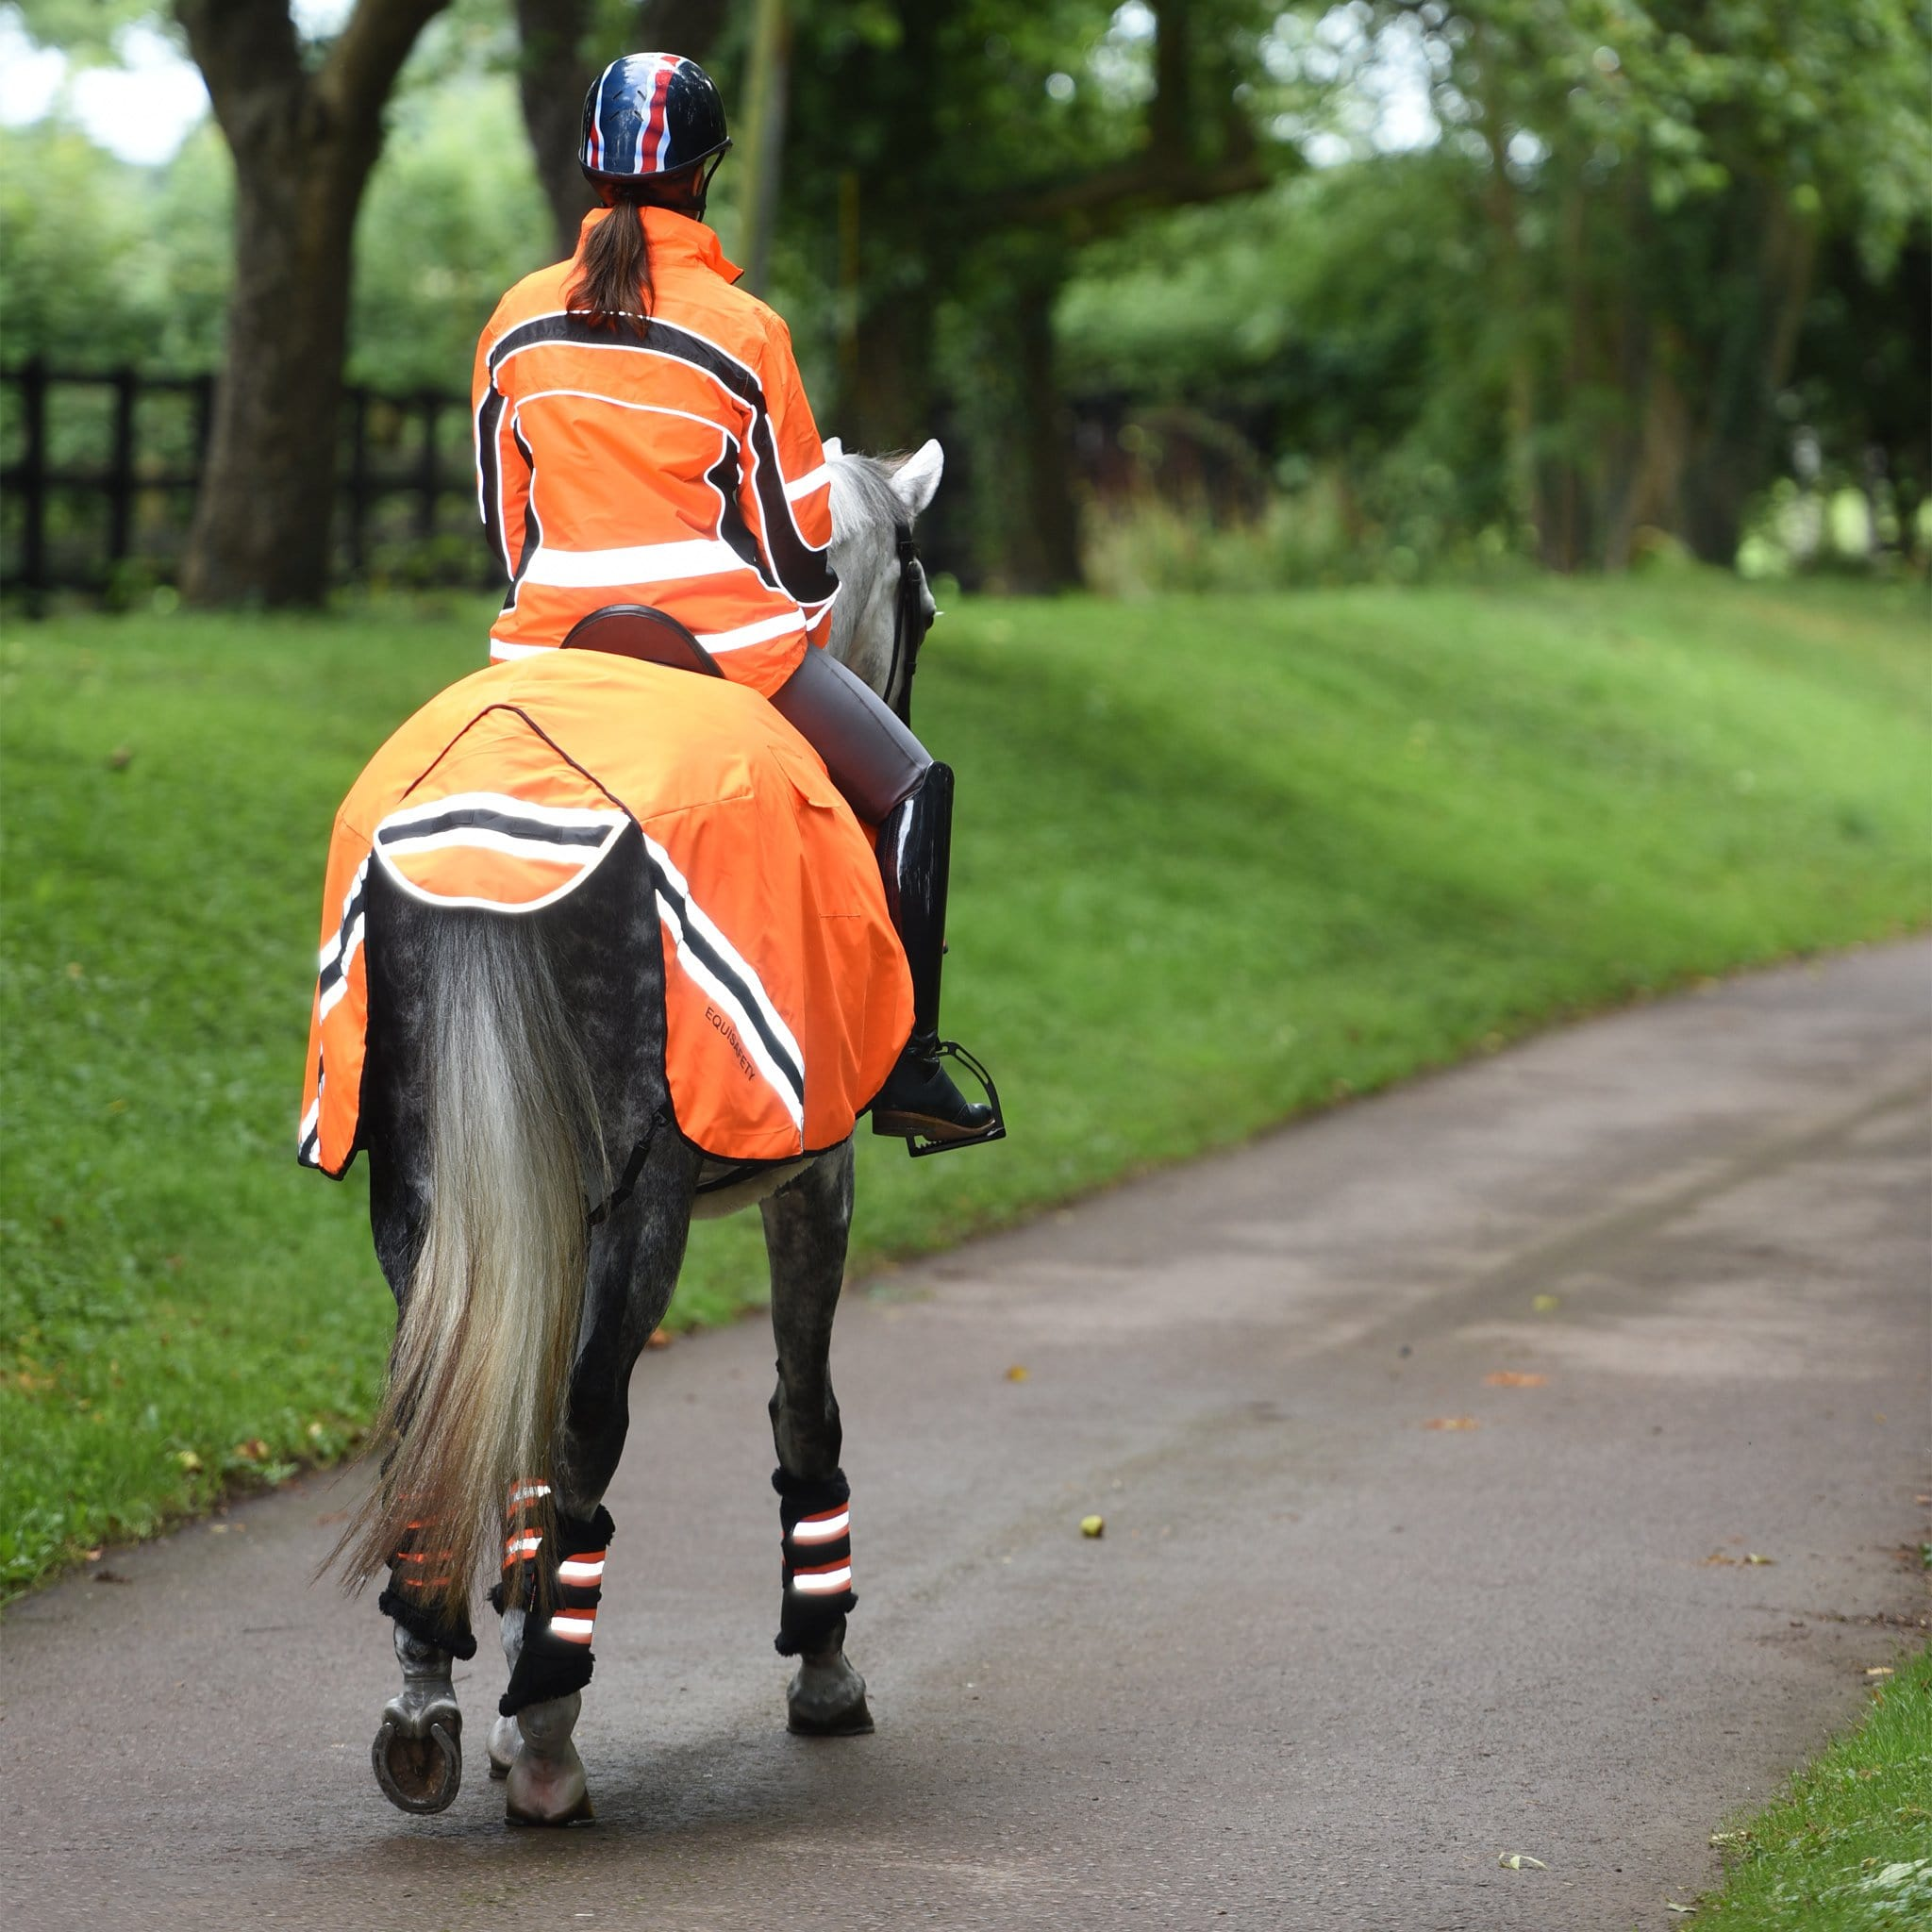 Equisafety Winter Wrap Around Sheet Orange Rear View With Rider WRUGO